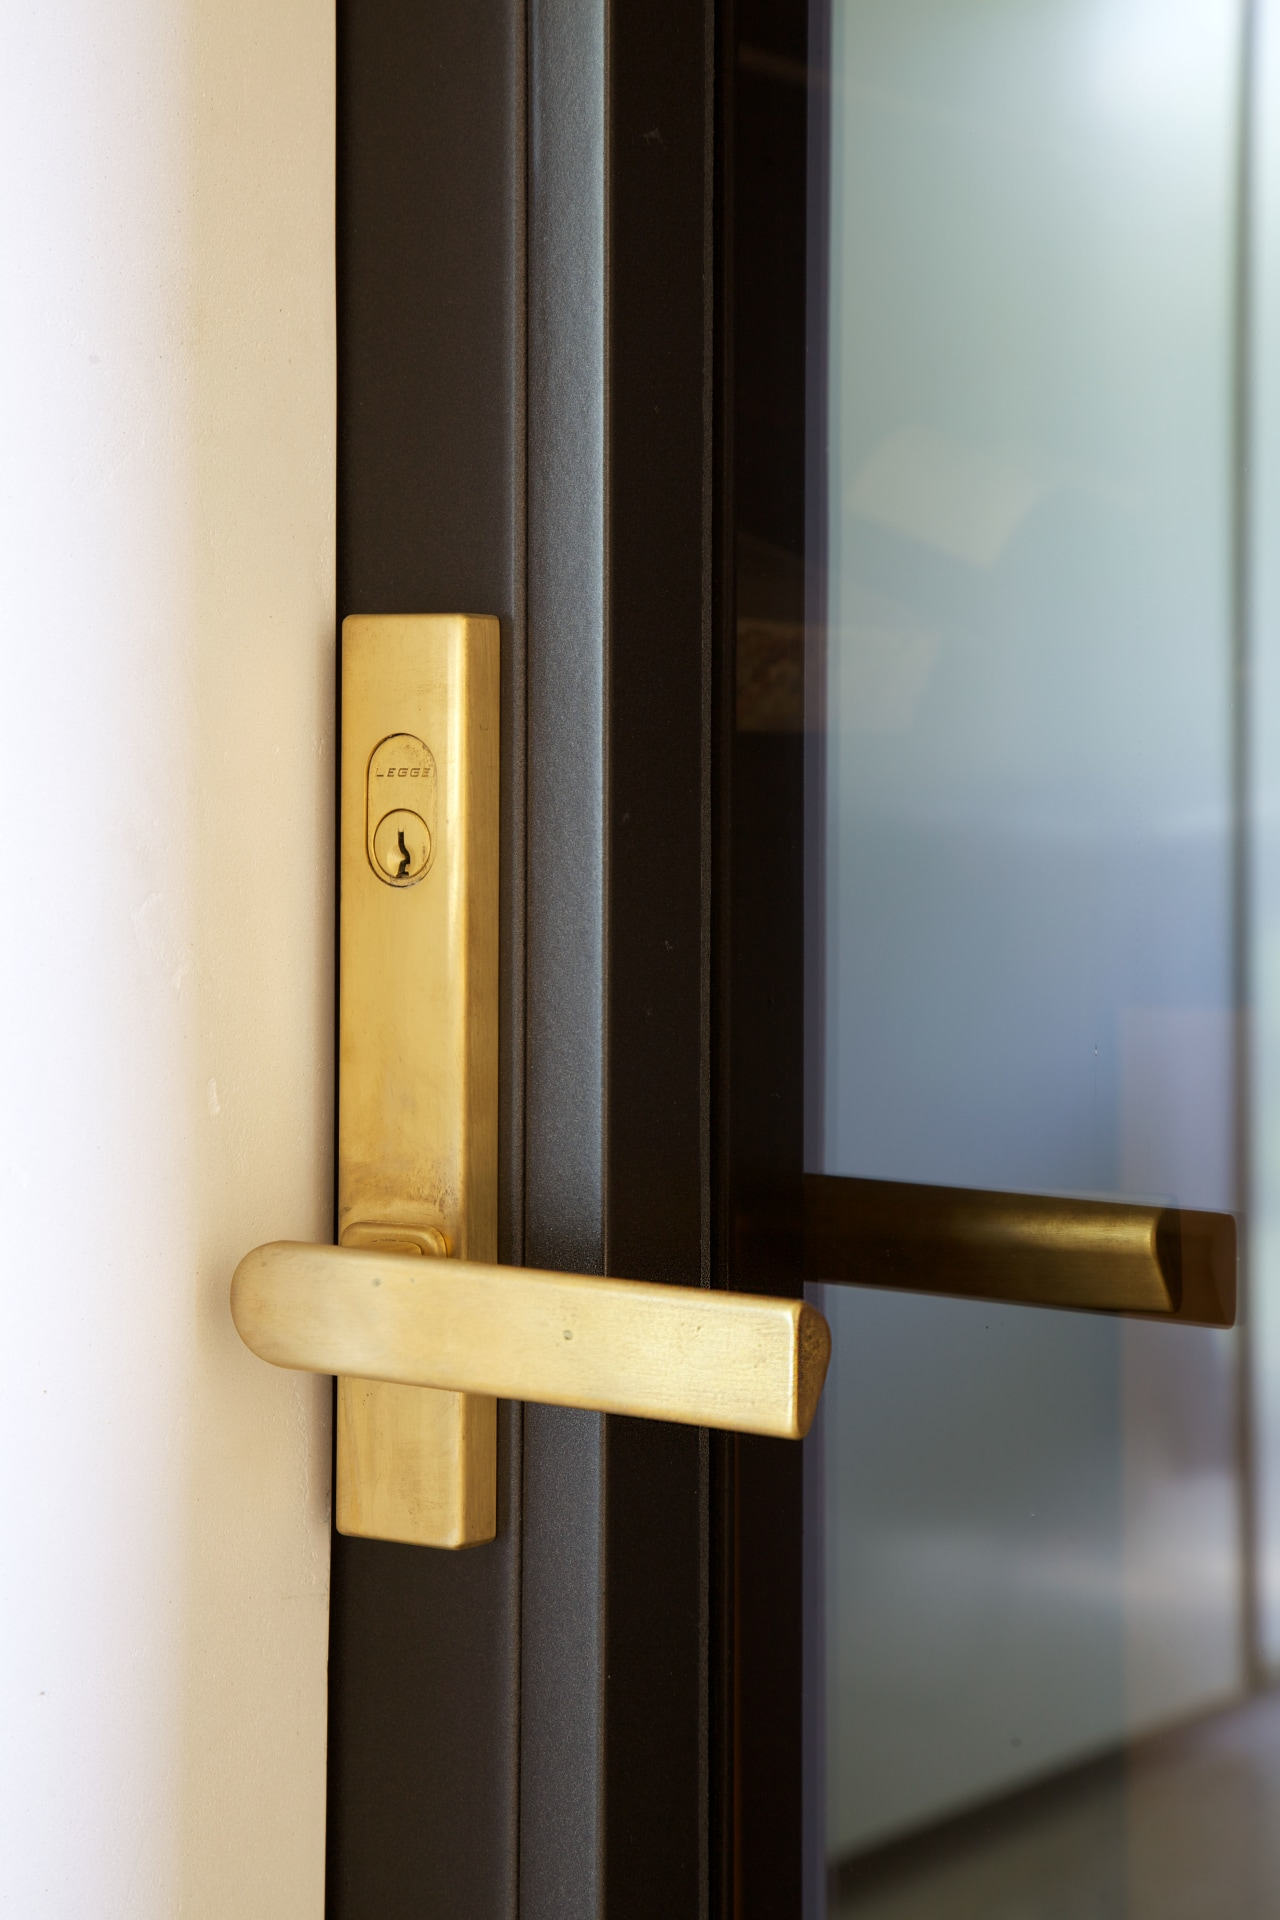 For this project, Chants brass tri-handles, selected by product design, gray, black